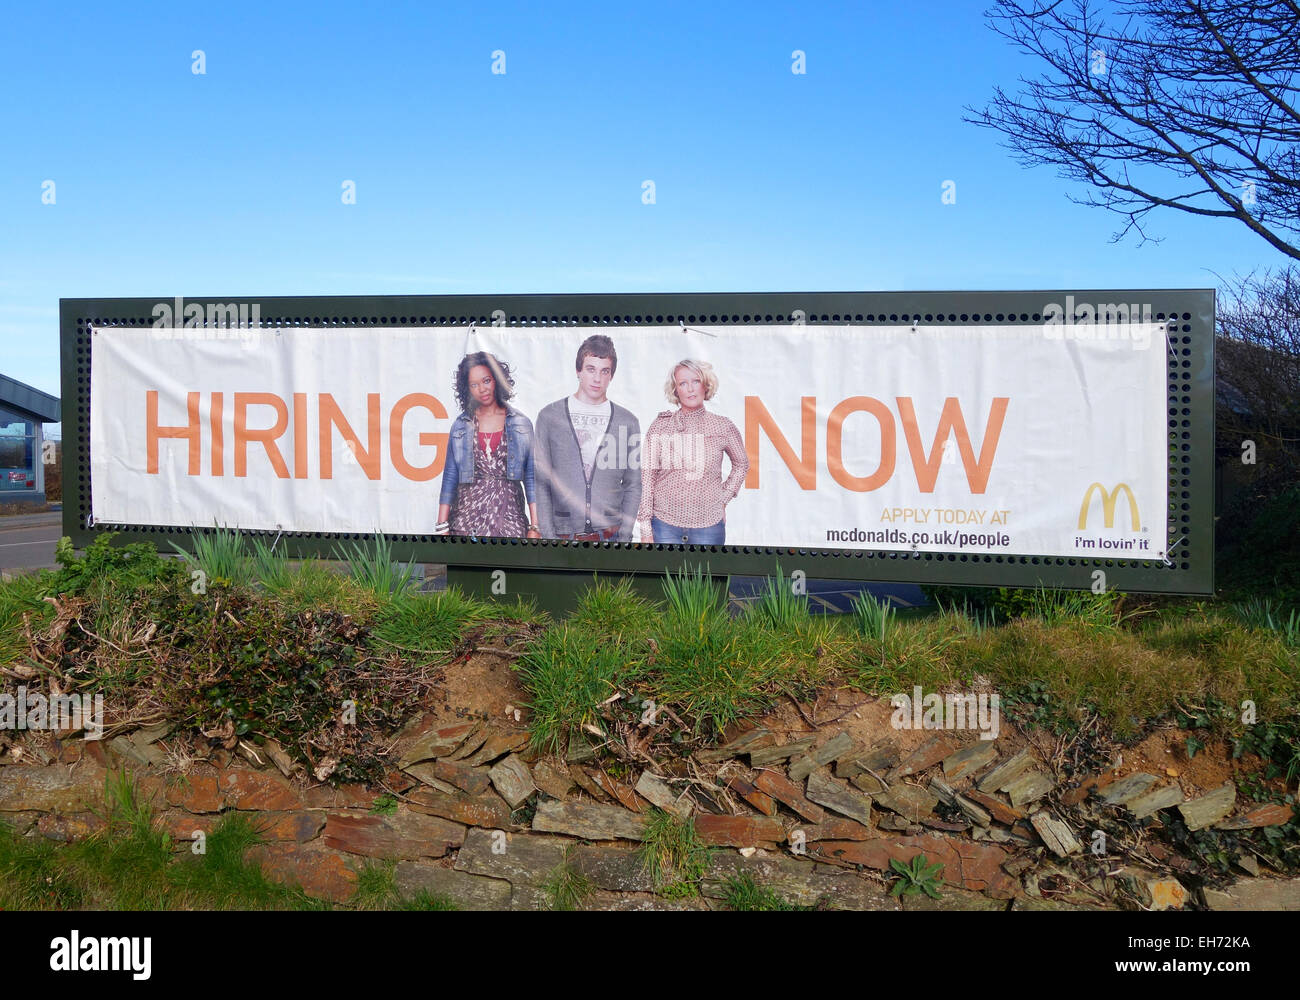 a hiring now sign outside a mcdonalds - Stock Image